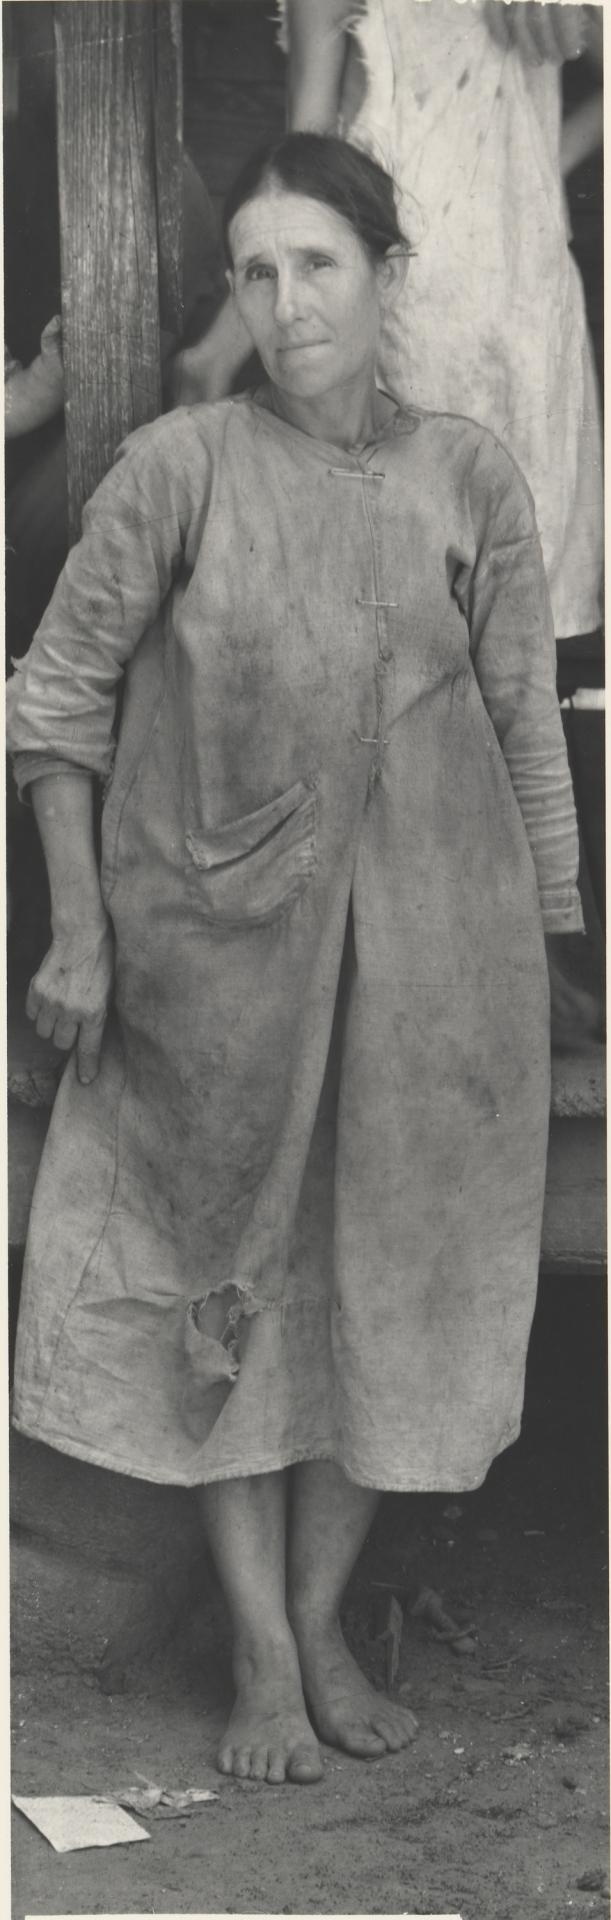 Mrs Frank Tengle, wife of a cotton sharecropper, Hale County, Alabama